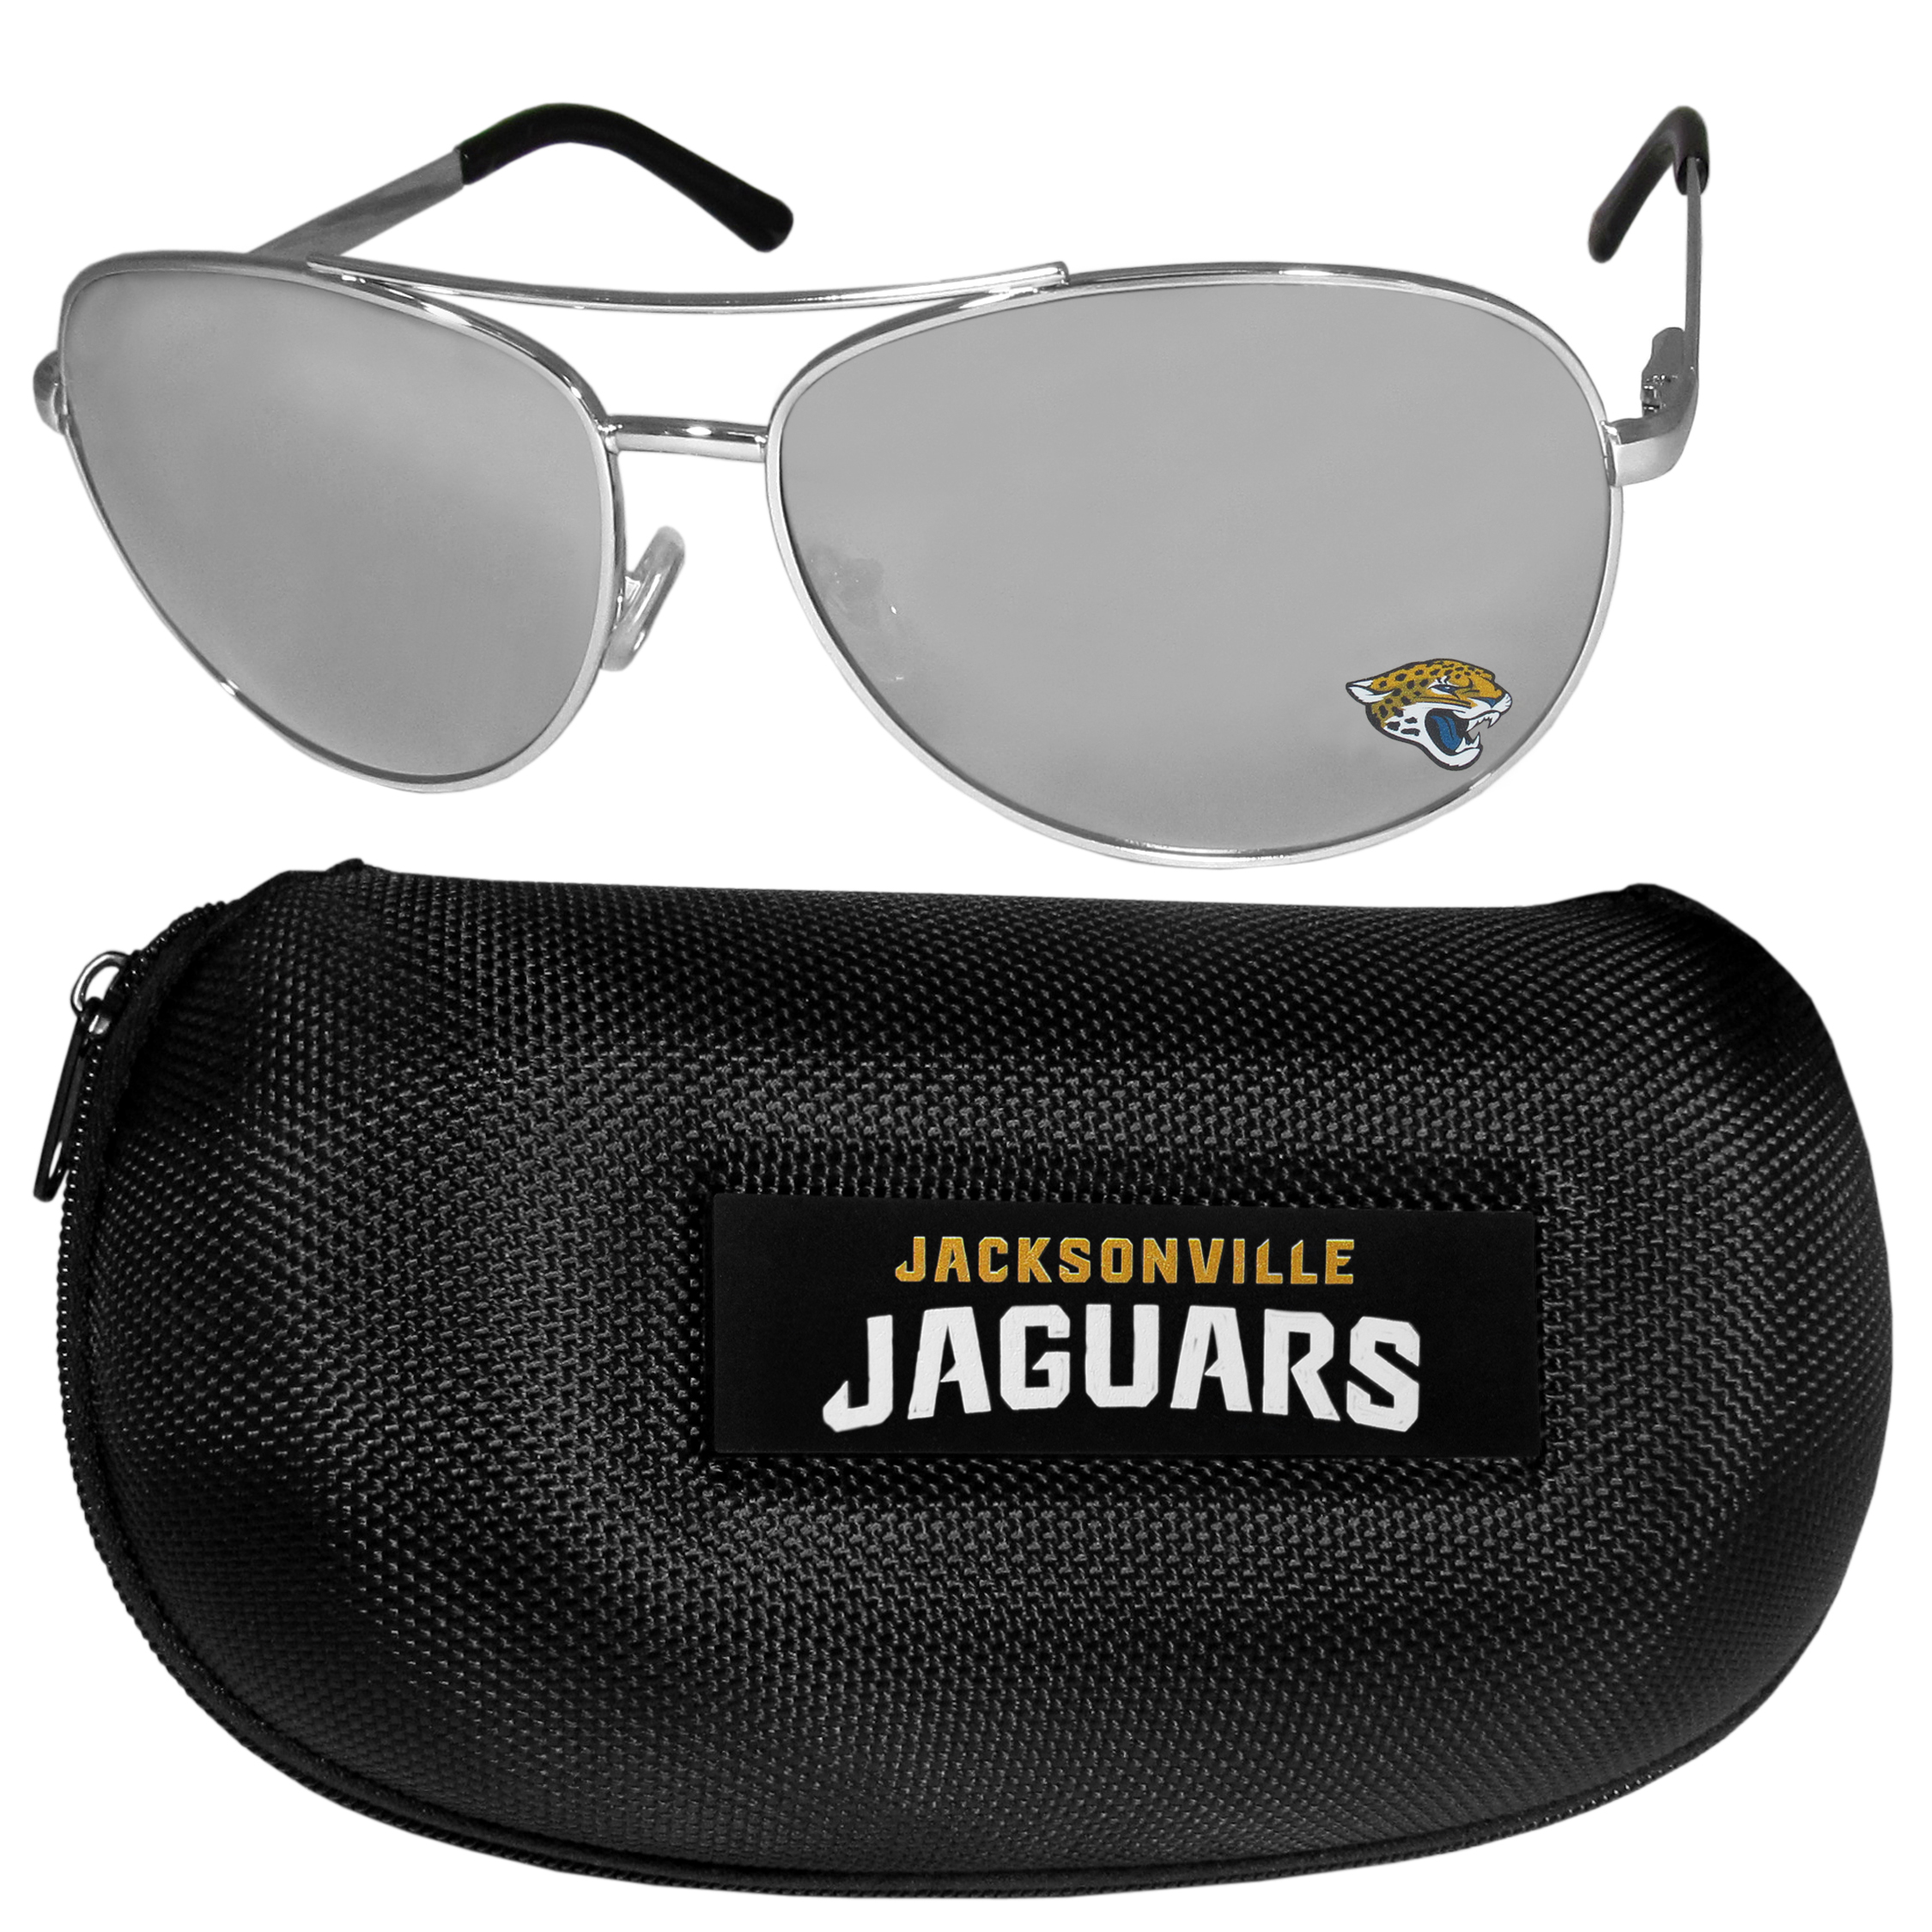 Jacksonville Jaguars Aviator Sunglasses and Zippered Carrying Case - Aviator sunglasses are truly an iconic retro fashion statement that never goes out-of-style. Our Jacksonville Jaguars  aviator sunglasses pair this classic look with your love of the game. The iridium coated lenses reduce glare while driving, boating, golfing and their 100% UVA/UVB rating provides you with the maximum UV protection for all your outdoor activities. A millennial favorite, these affordable designer frames are the perfect eyewear accessory for a sports fan that is looking for high-quality at an affordable price. The durable, flex hinged frames are tough enough for hiking and camping or if you prefer sun bathing by the pool or on the beach these shades will really stand the test of time. The sunglasses come with a hard shell zippered case which has a large team logo on the lid that will make even the most die-hard fan proud!